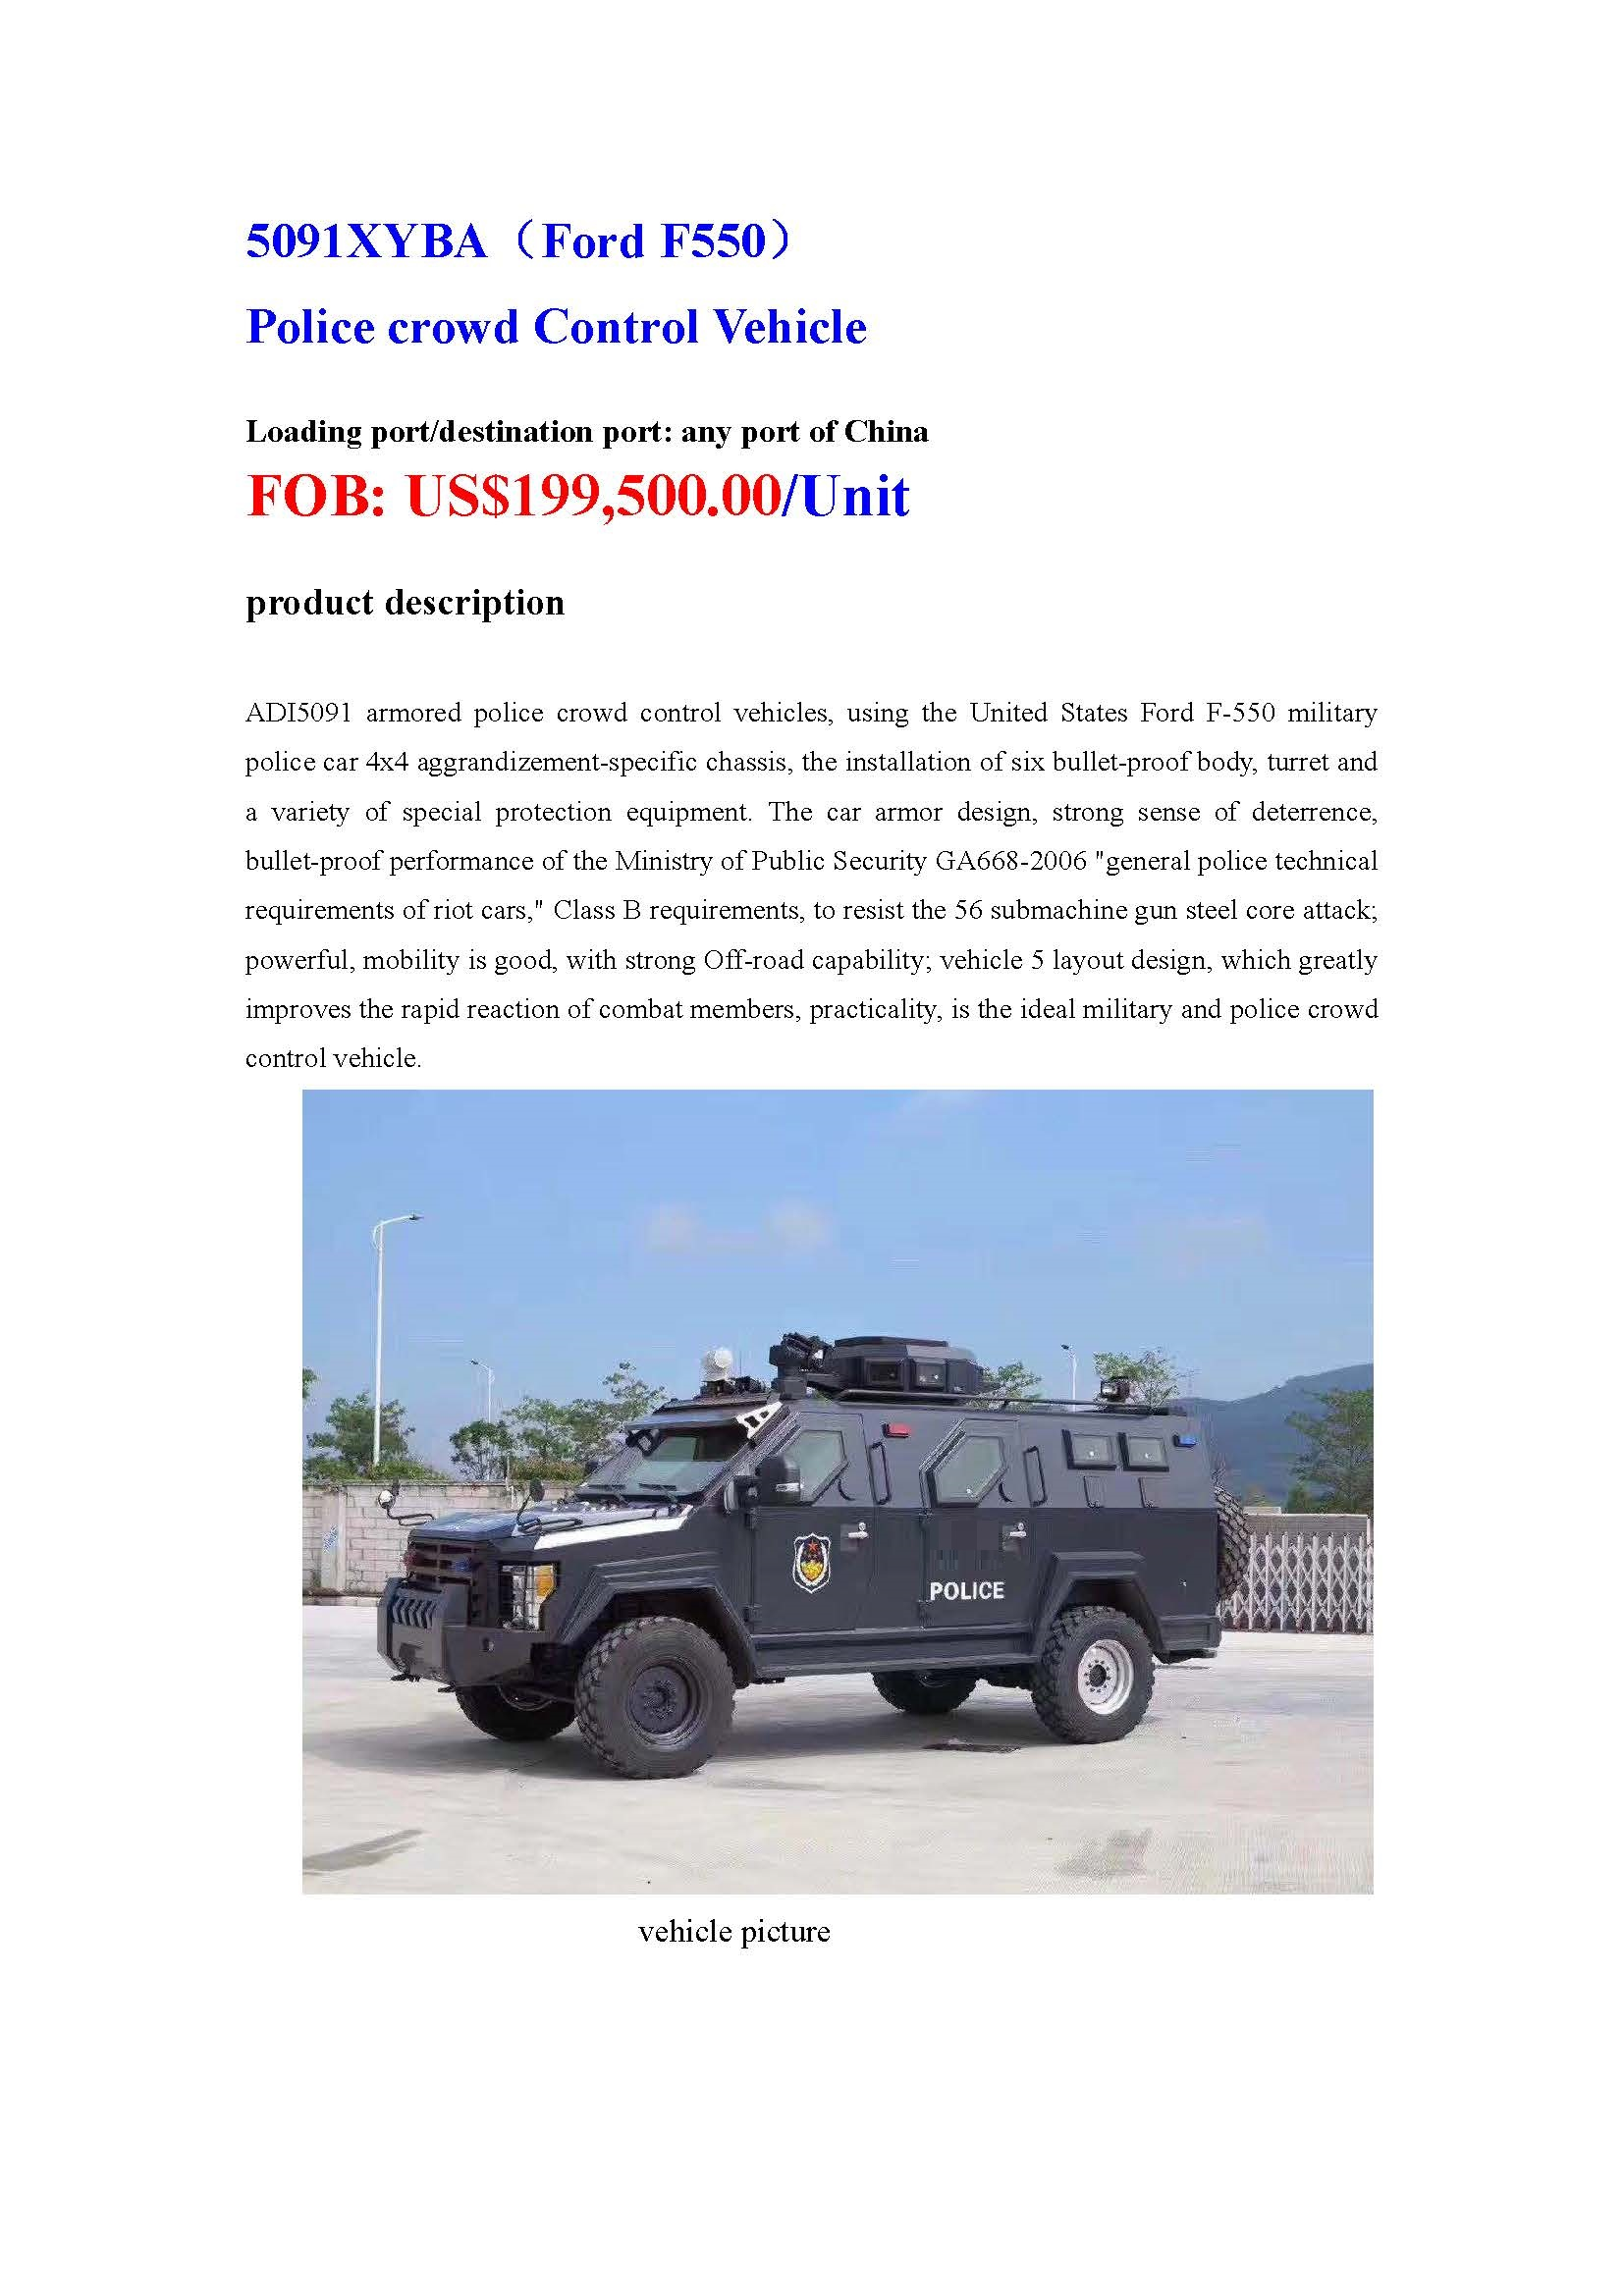 Armored police and military vehicle.